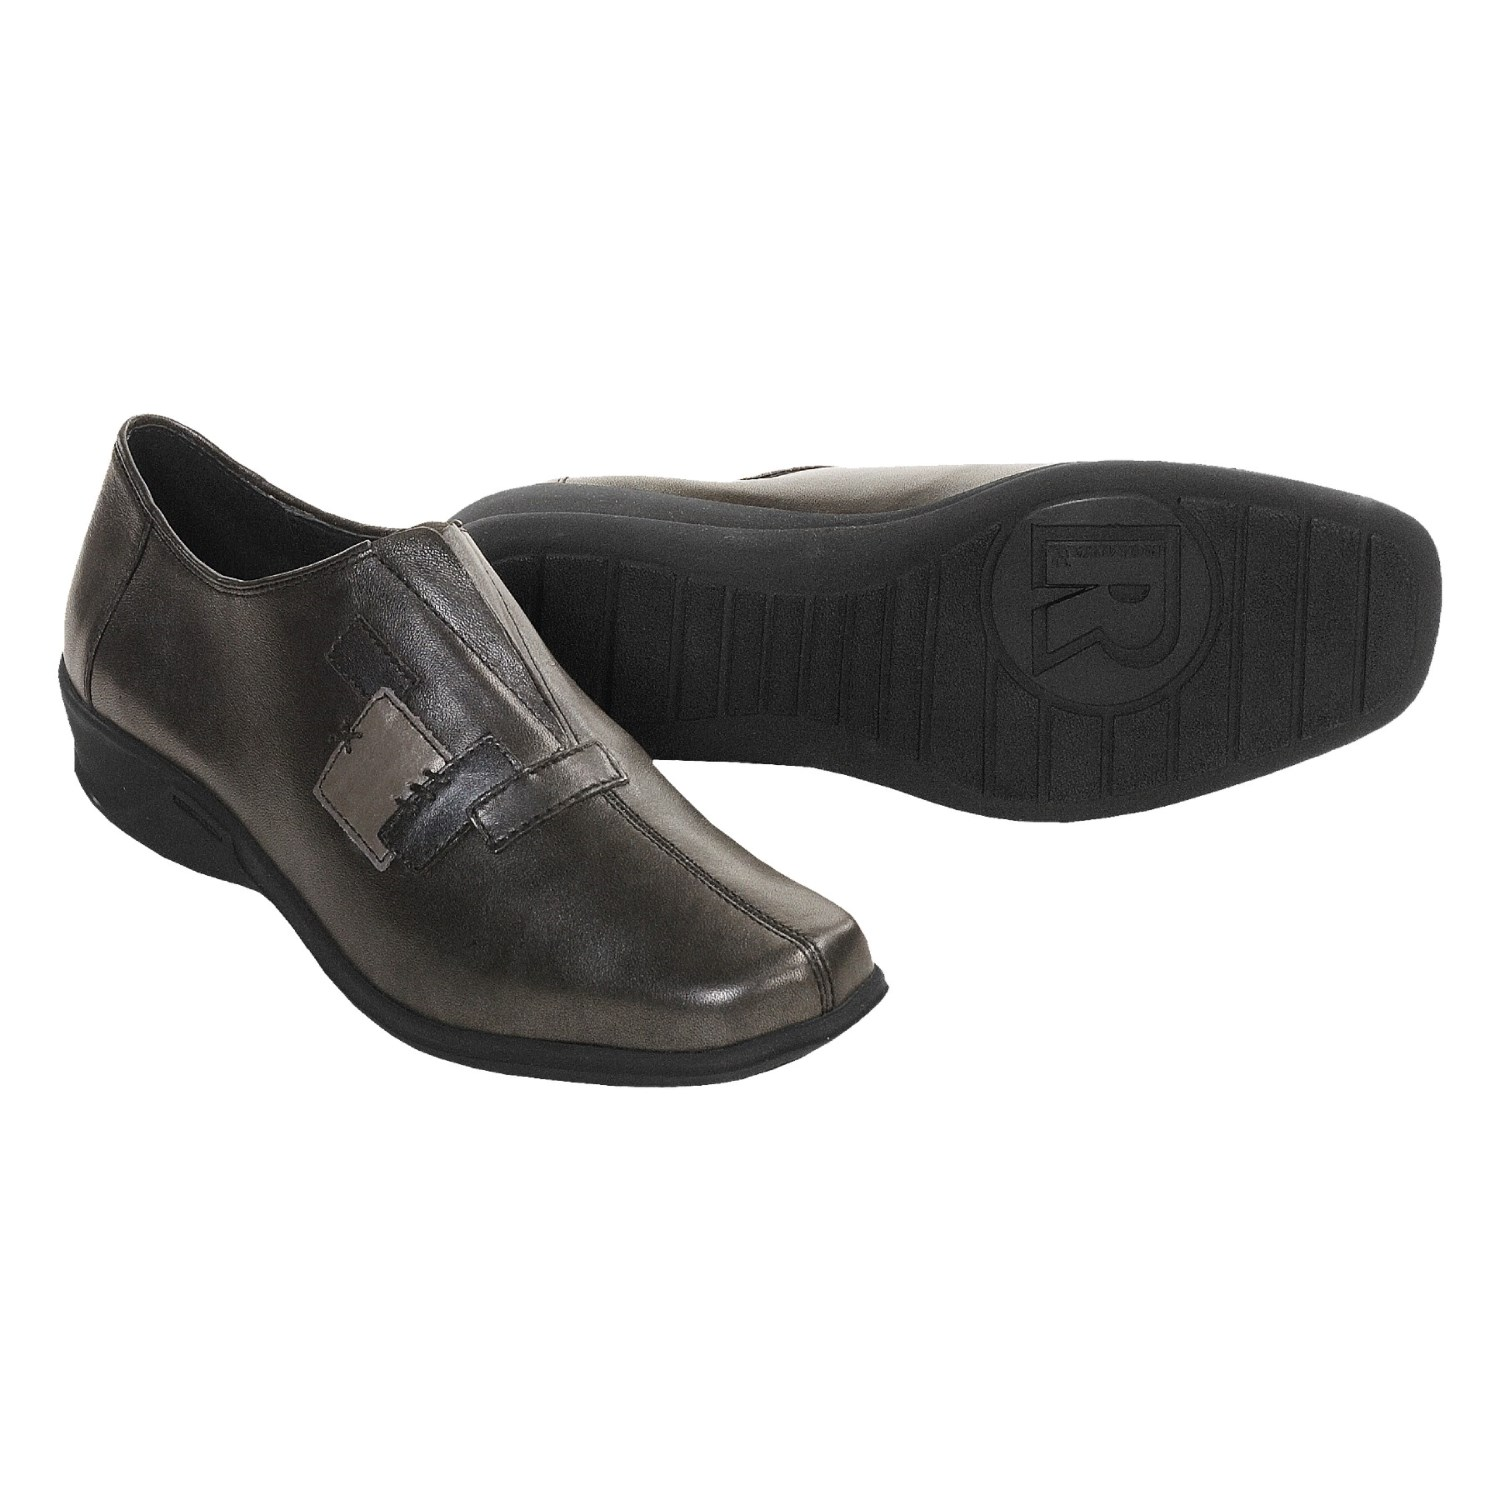 Romika Shoes For Women